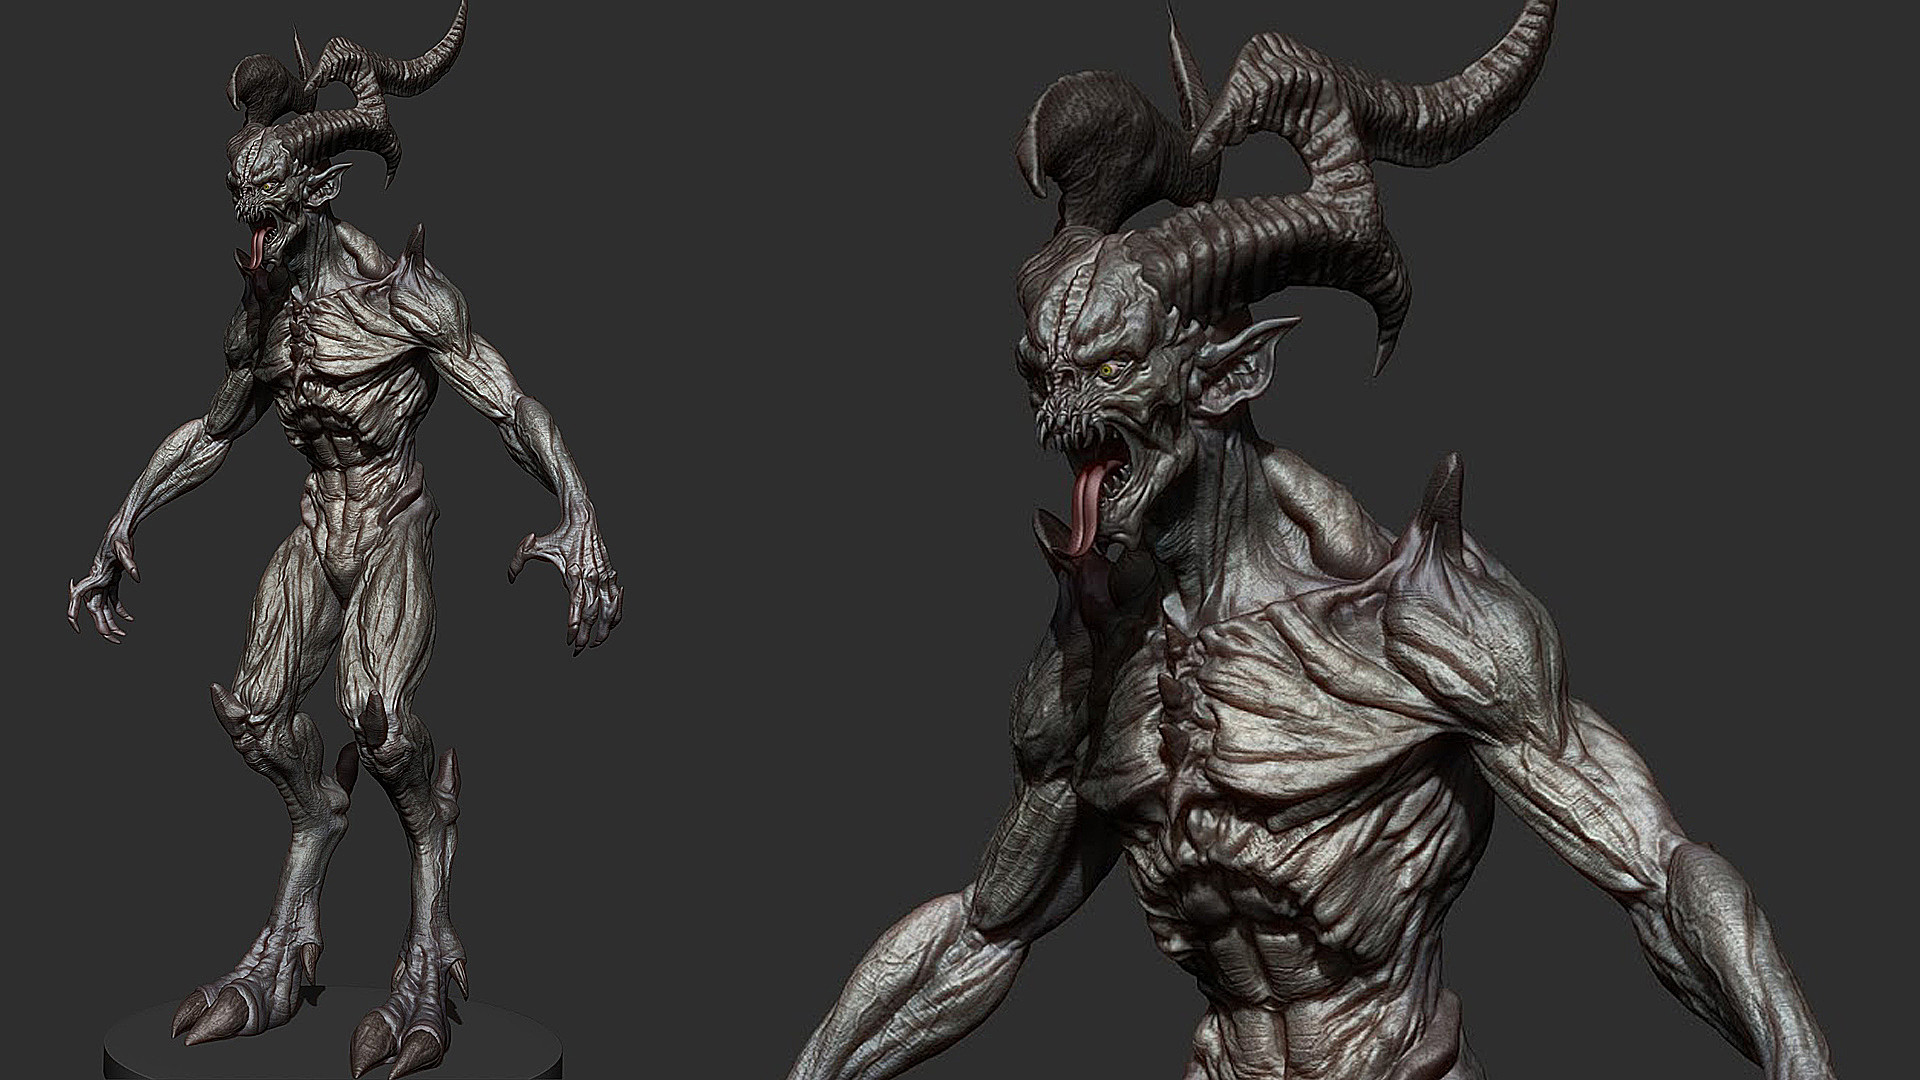 Tomos H Evans Demon Zbrush Character